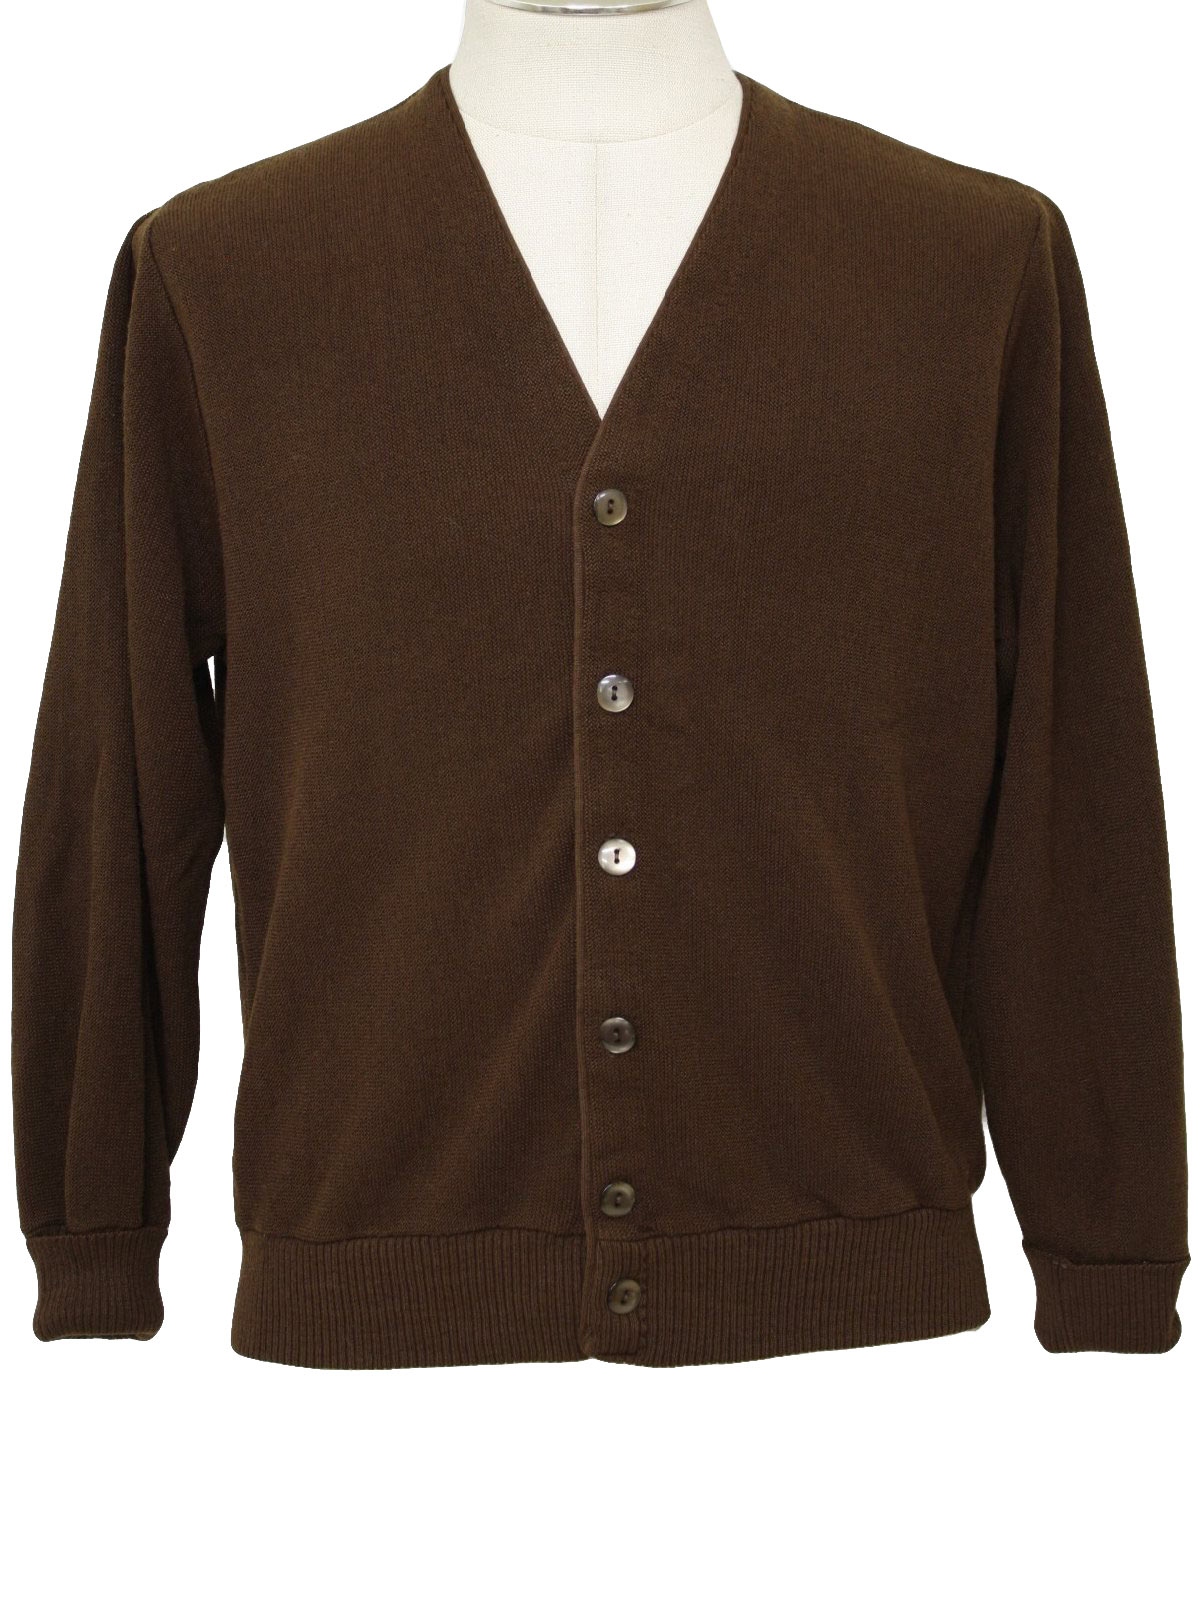 Find great deals on eBay for brown cardigan sweater for women. Shop with confidence.